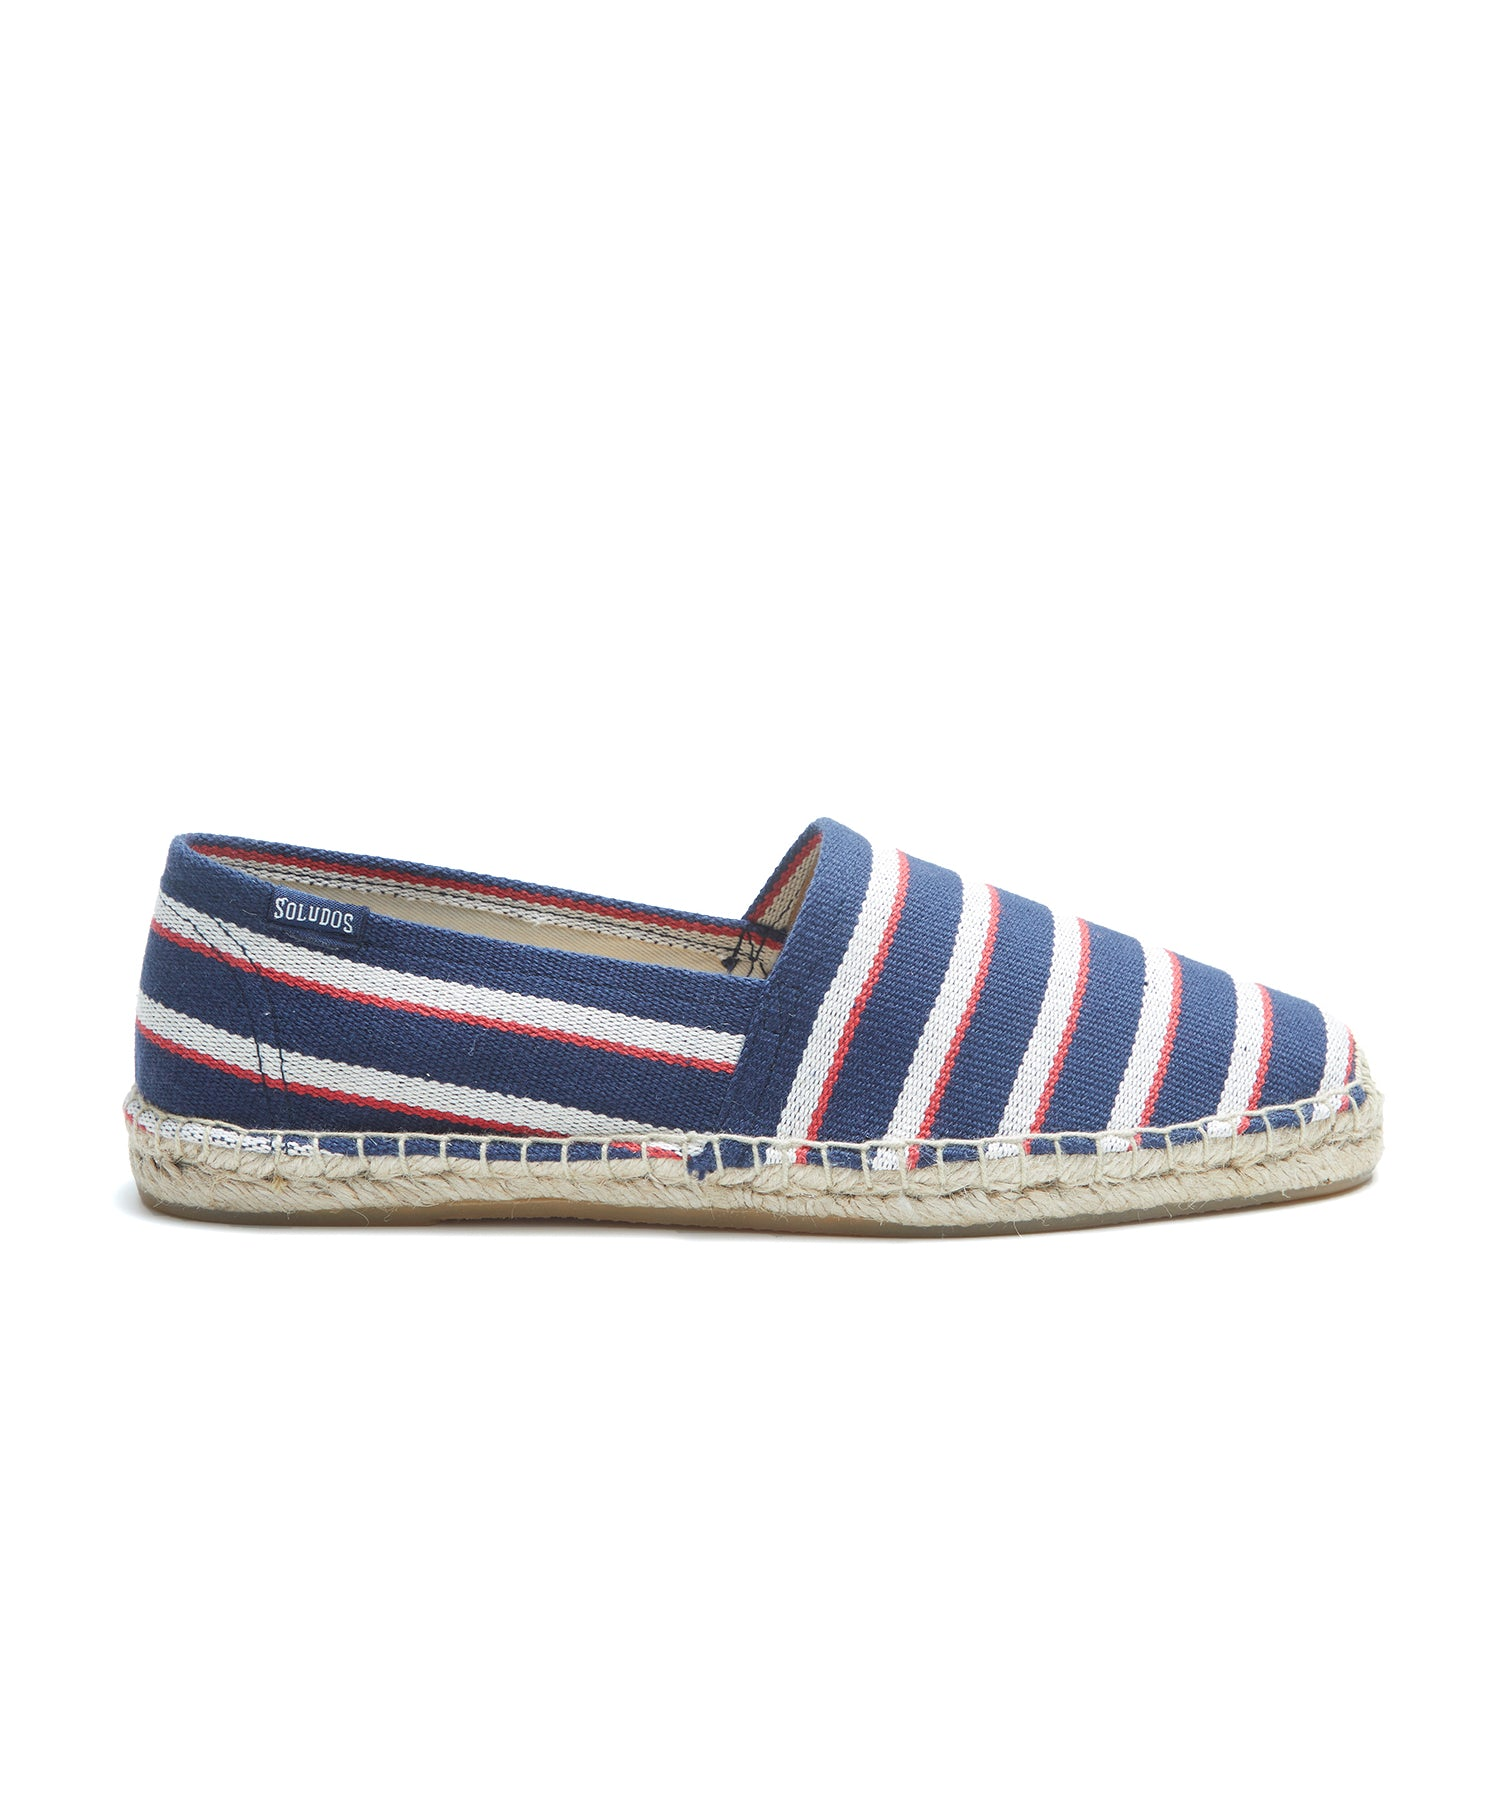 Soludos Stripe Original Dali in Navy/Natural